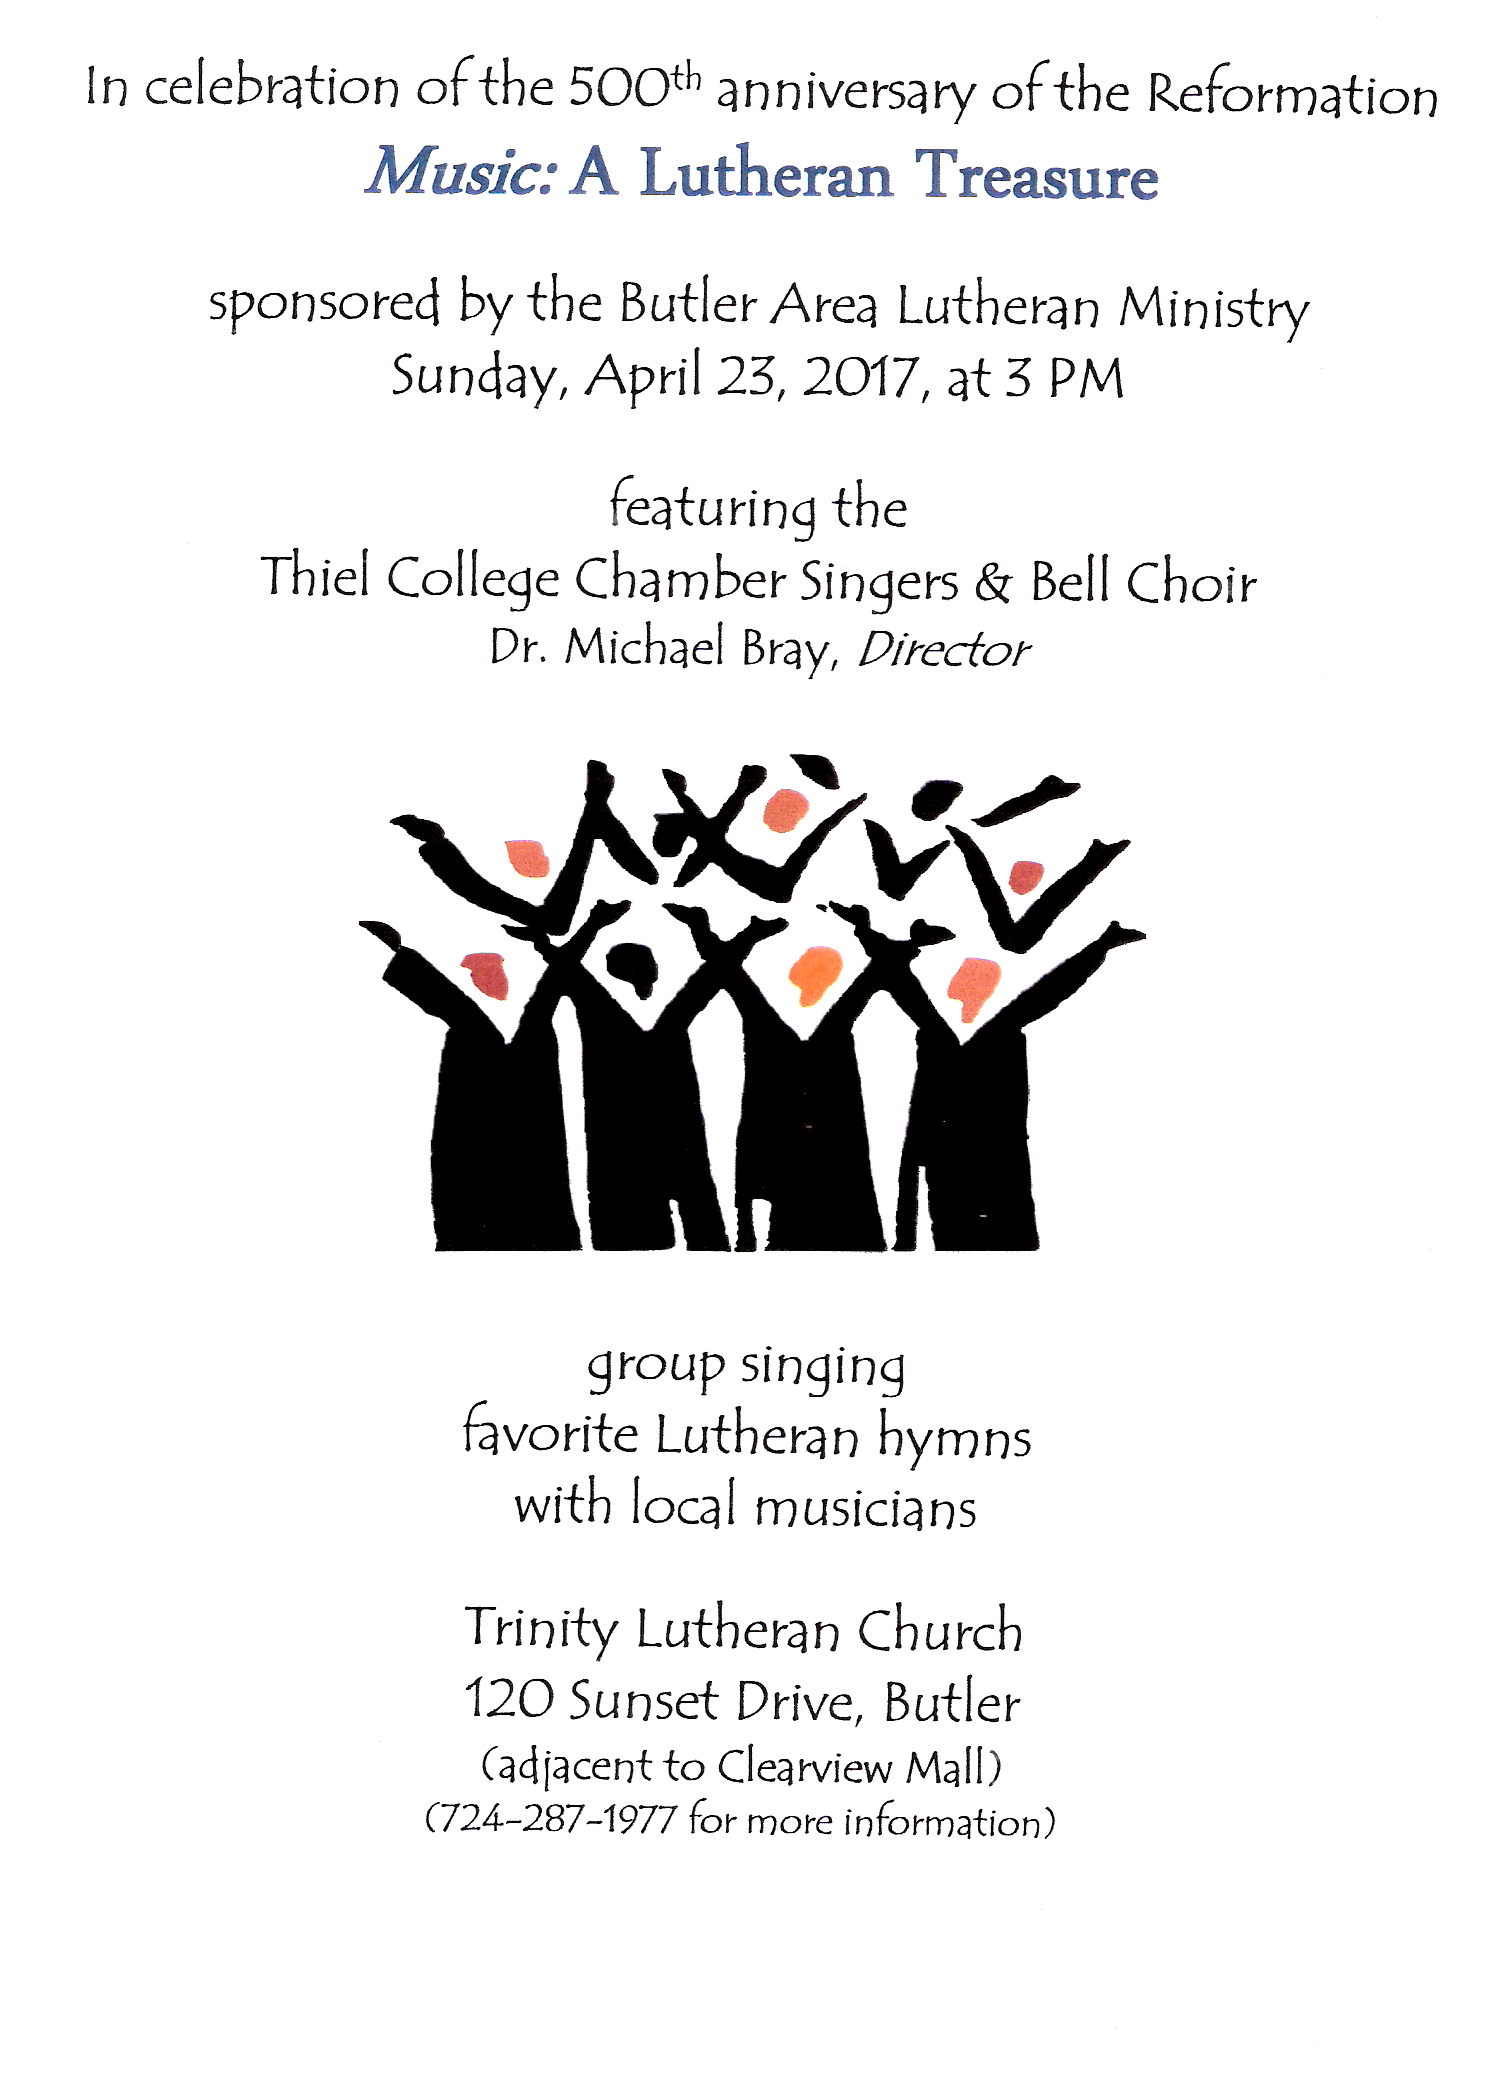 Thiel College Singers and Bell Choir